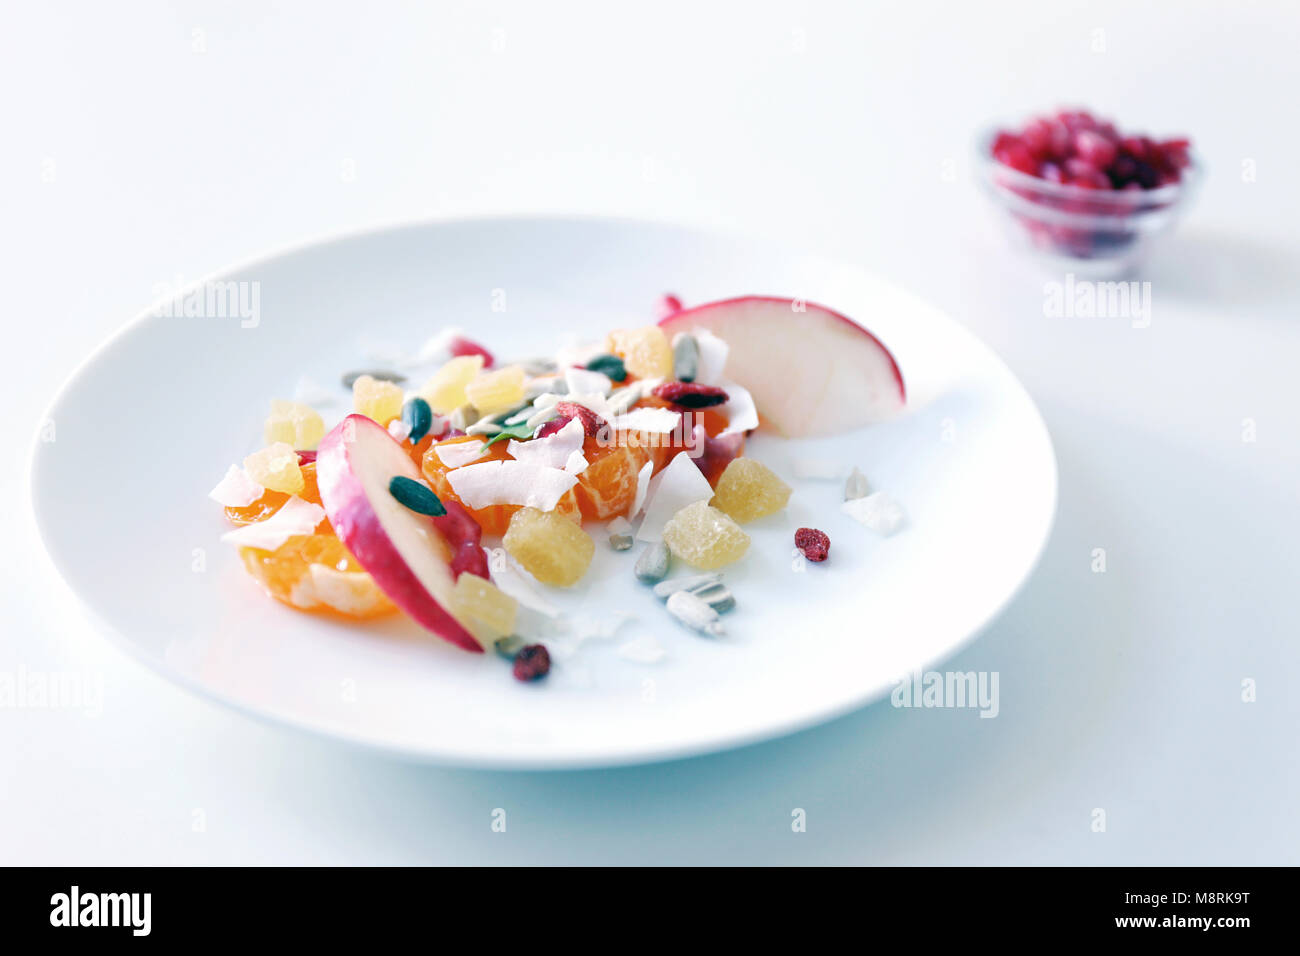 High angle view of food served in plate over white background - Stock Image